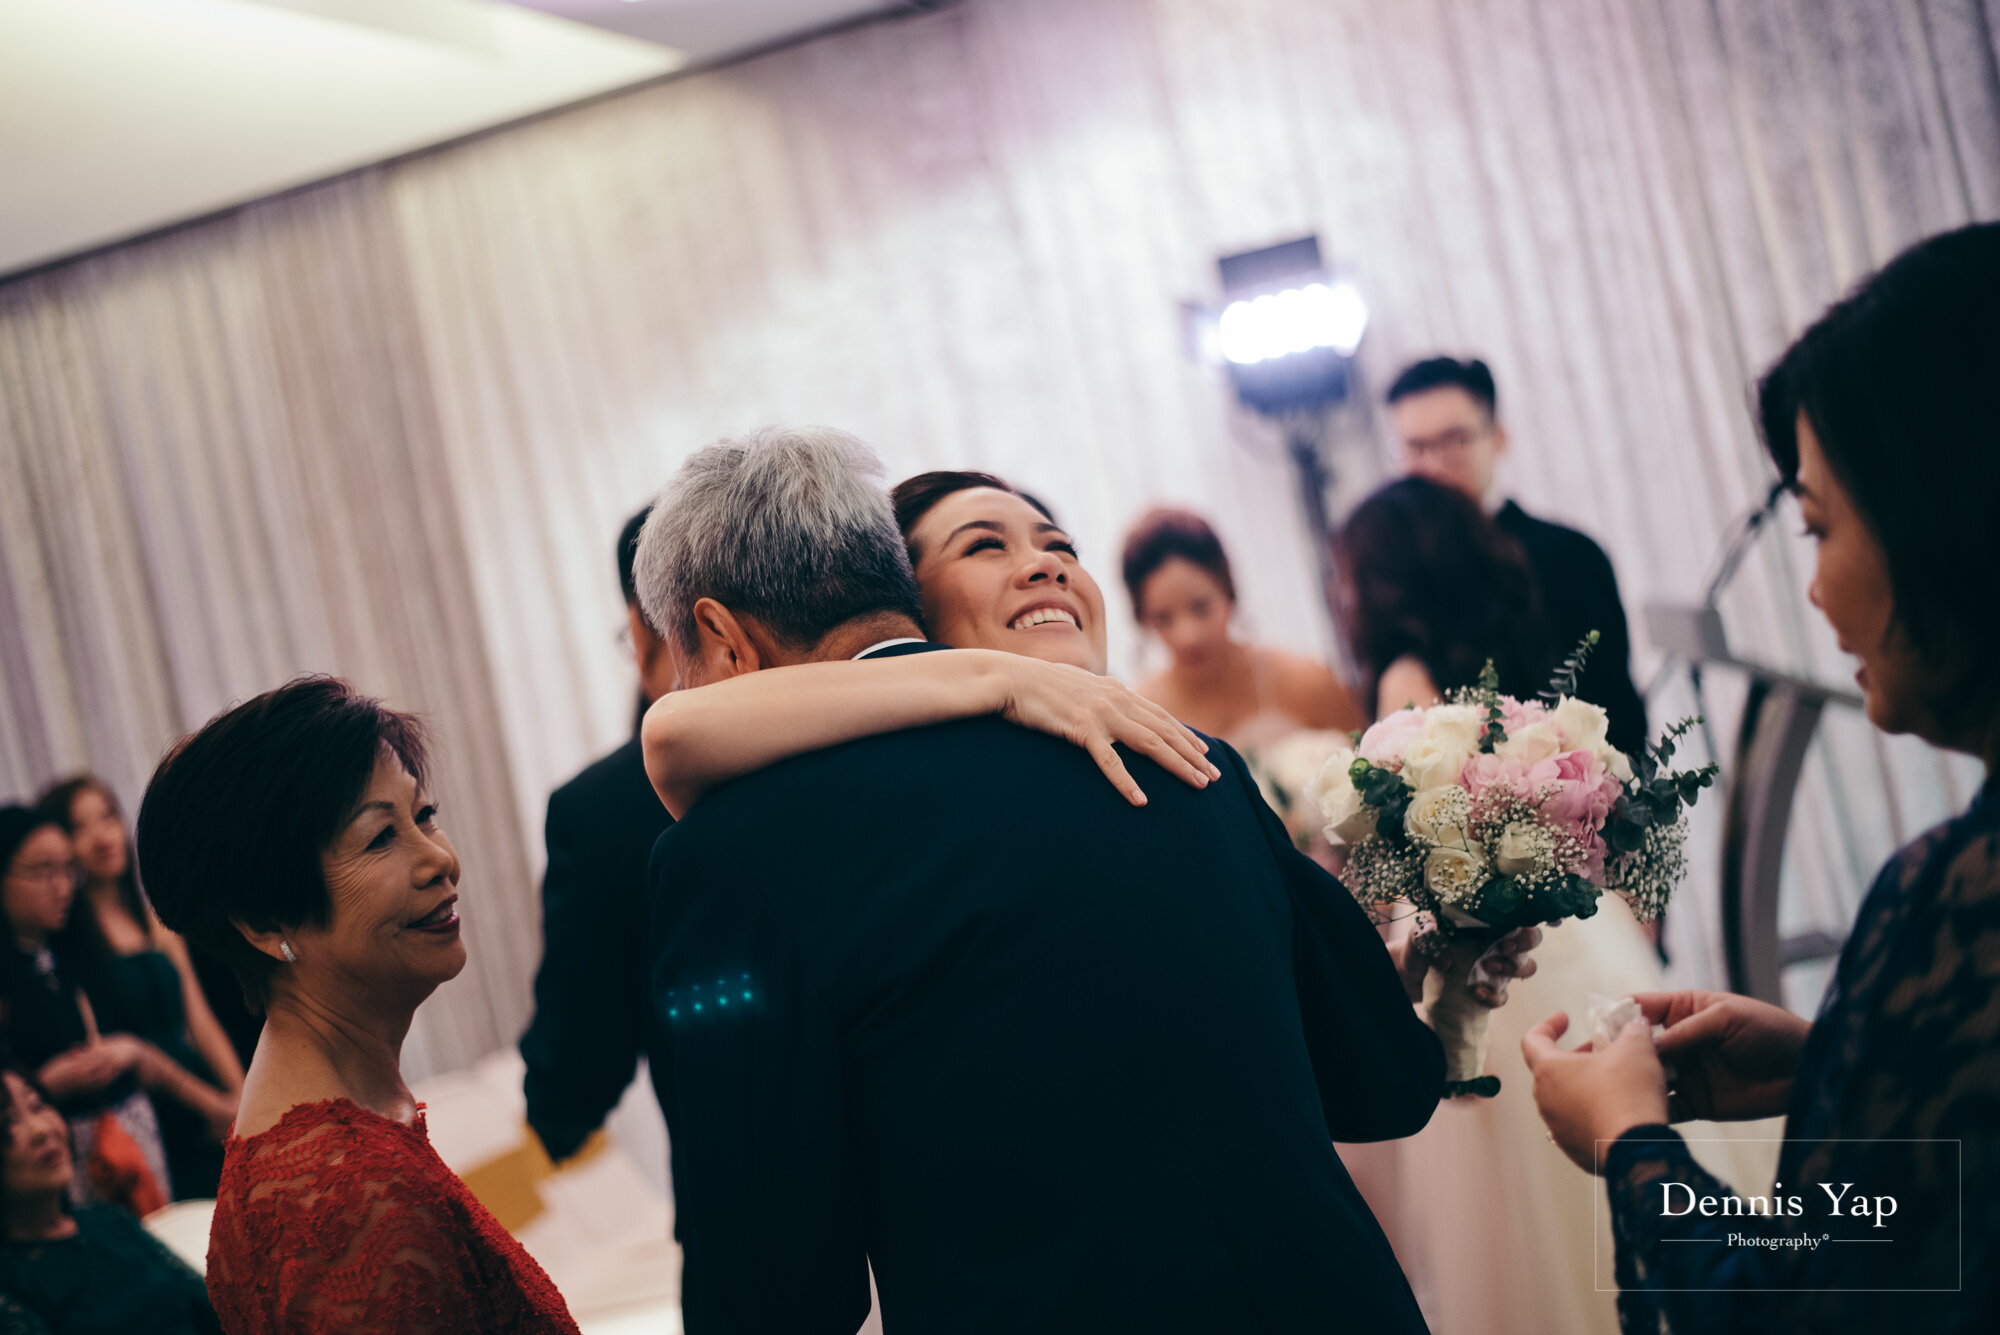 kevan khing wei wedding day hilton kuala lumpur vow exchange ceremony dennis yap photography malaysia top wedding photographer-24.jpg